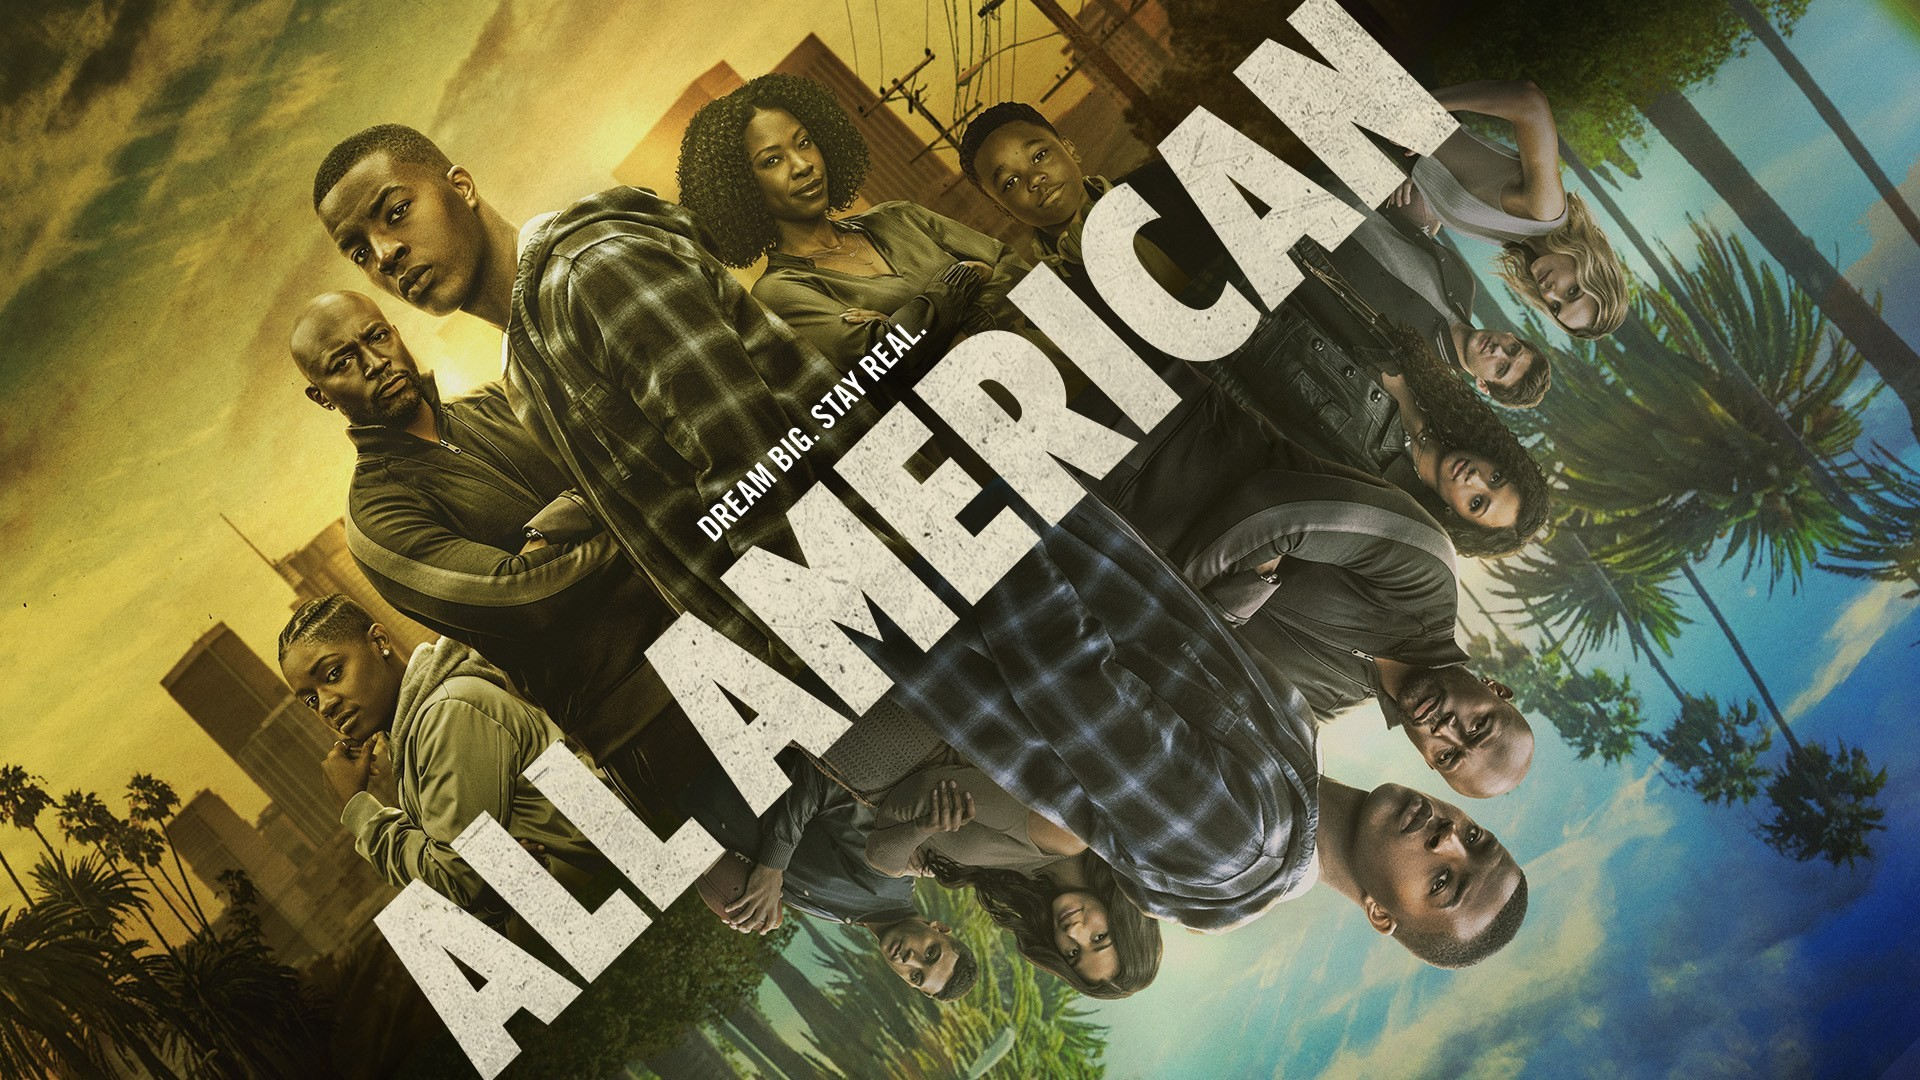 All American 3: Release Date, Trailer, Cast and More!